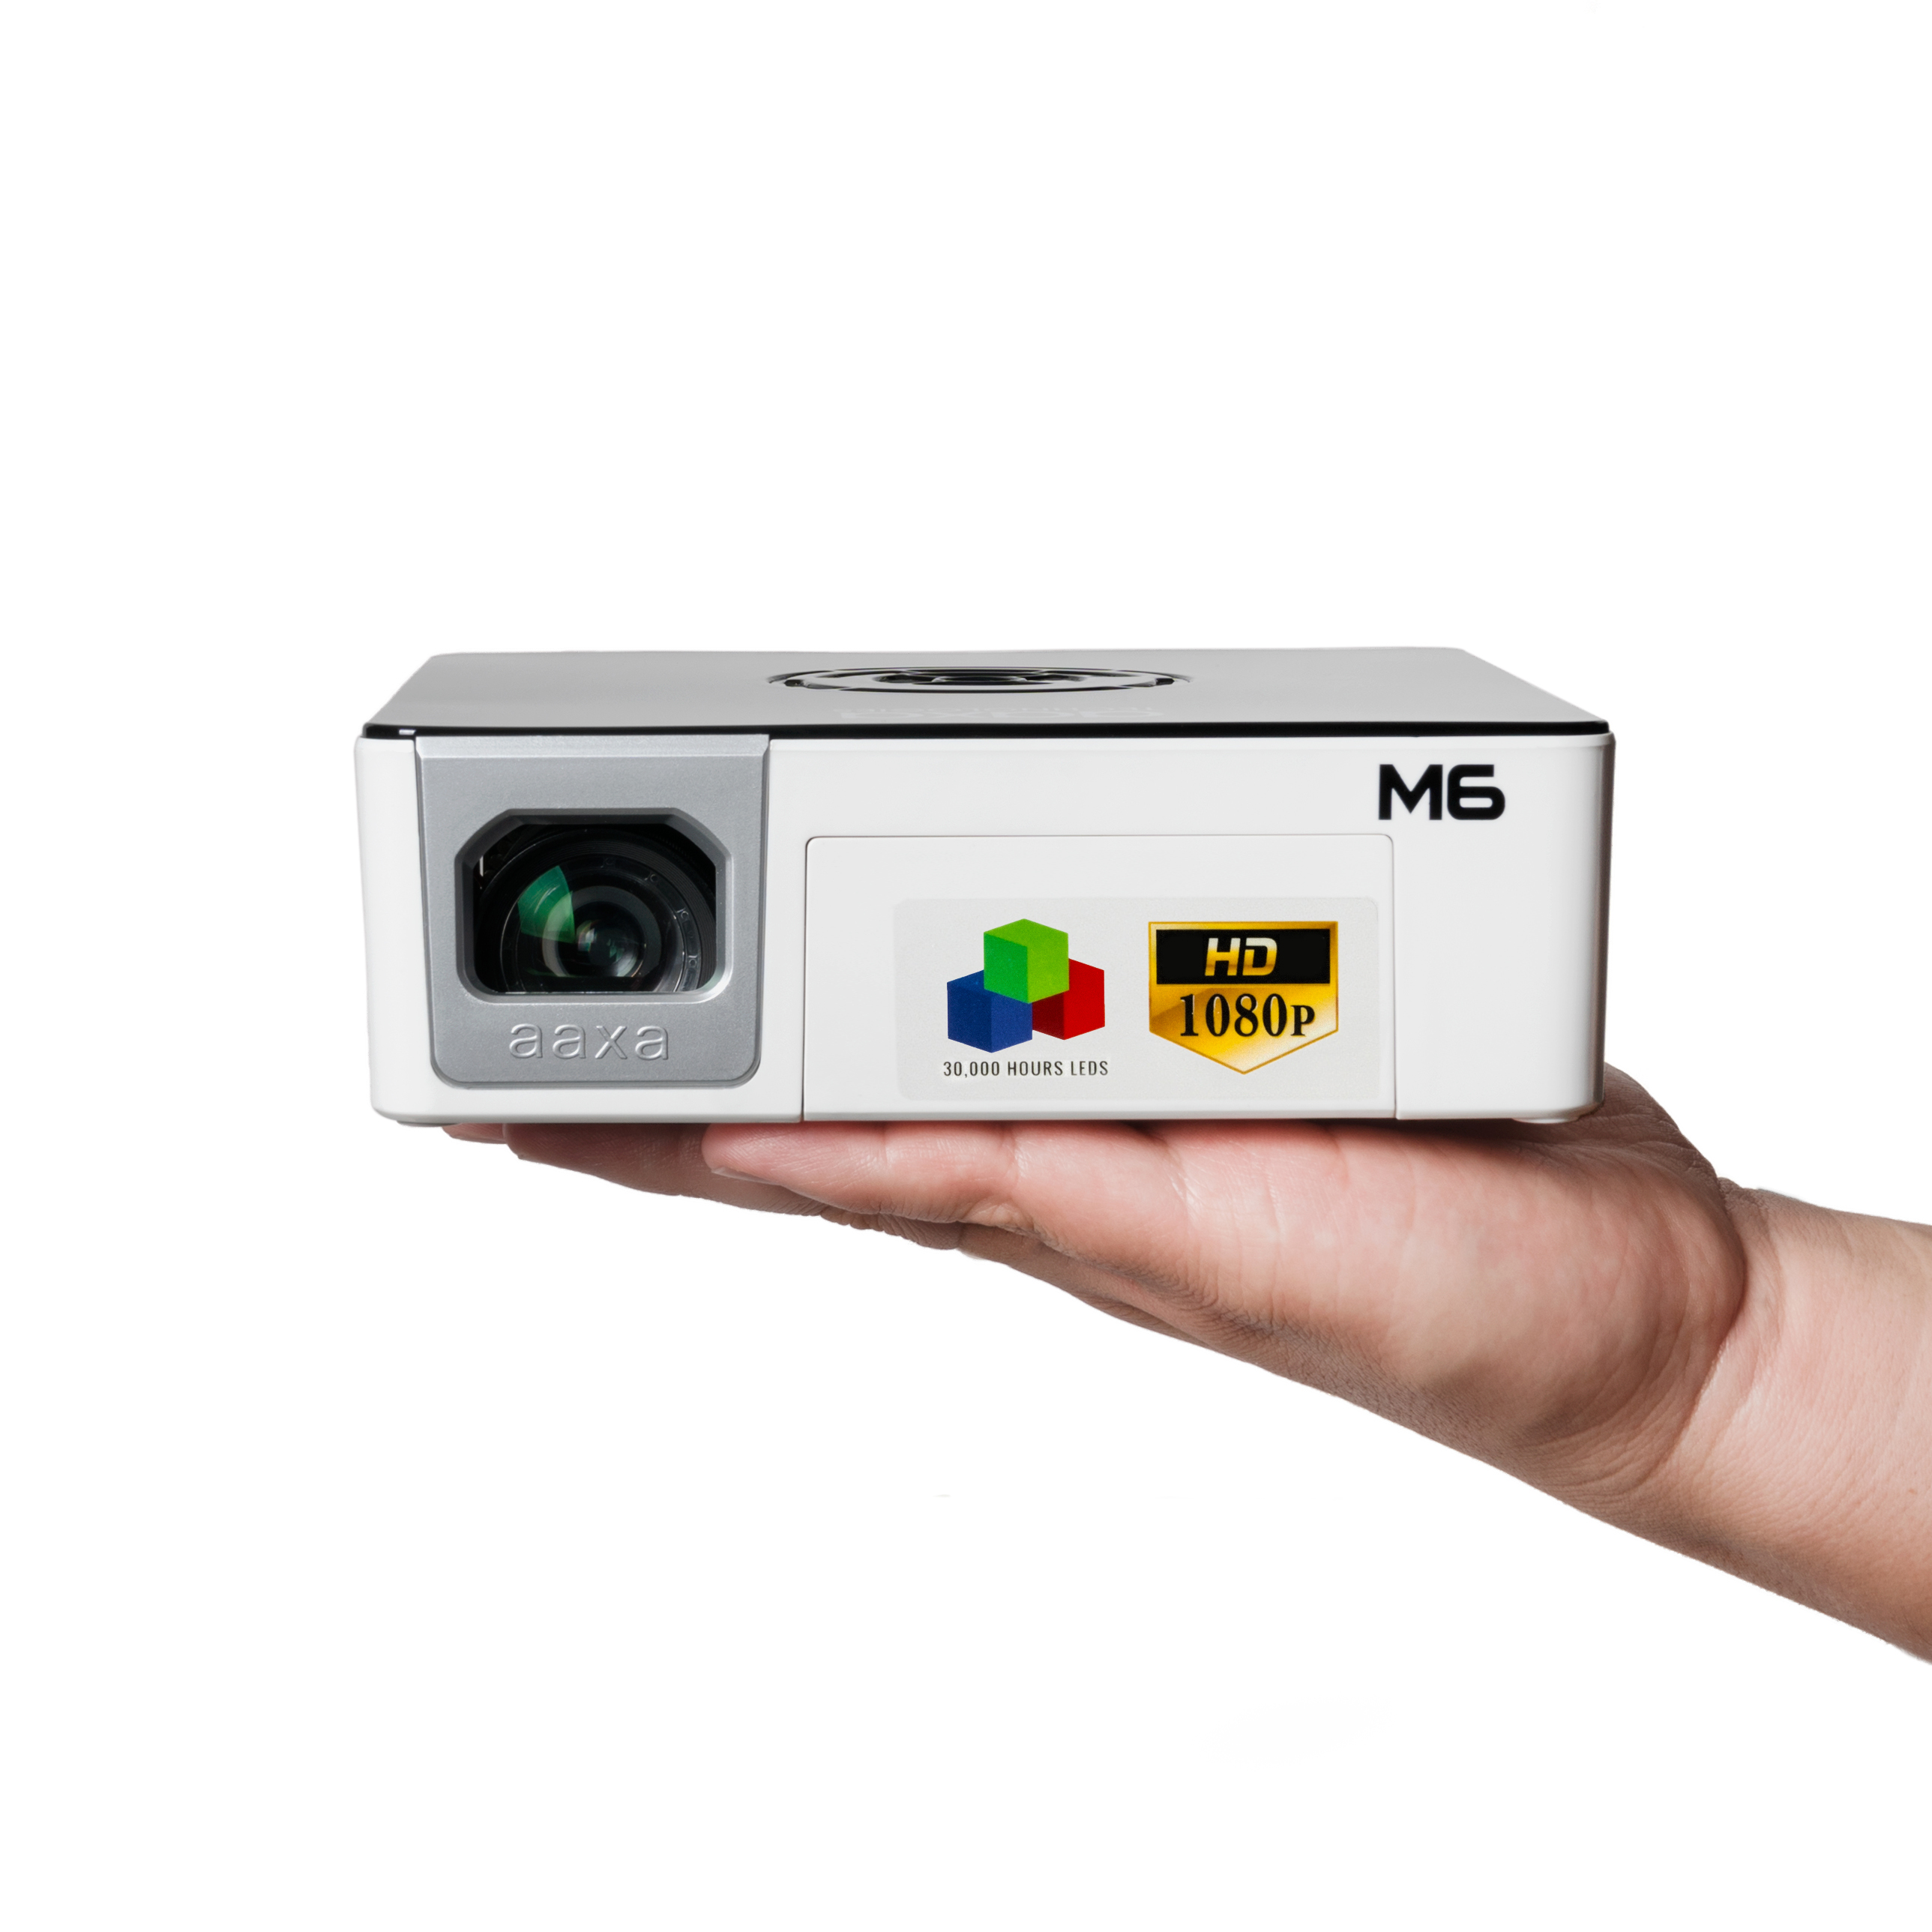 AAXA M6 1200lm Full HD LED Pico Projector w/ Onboard Media Player